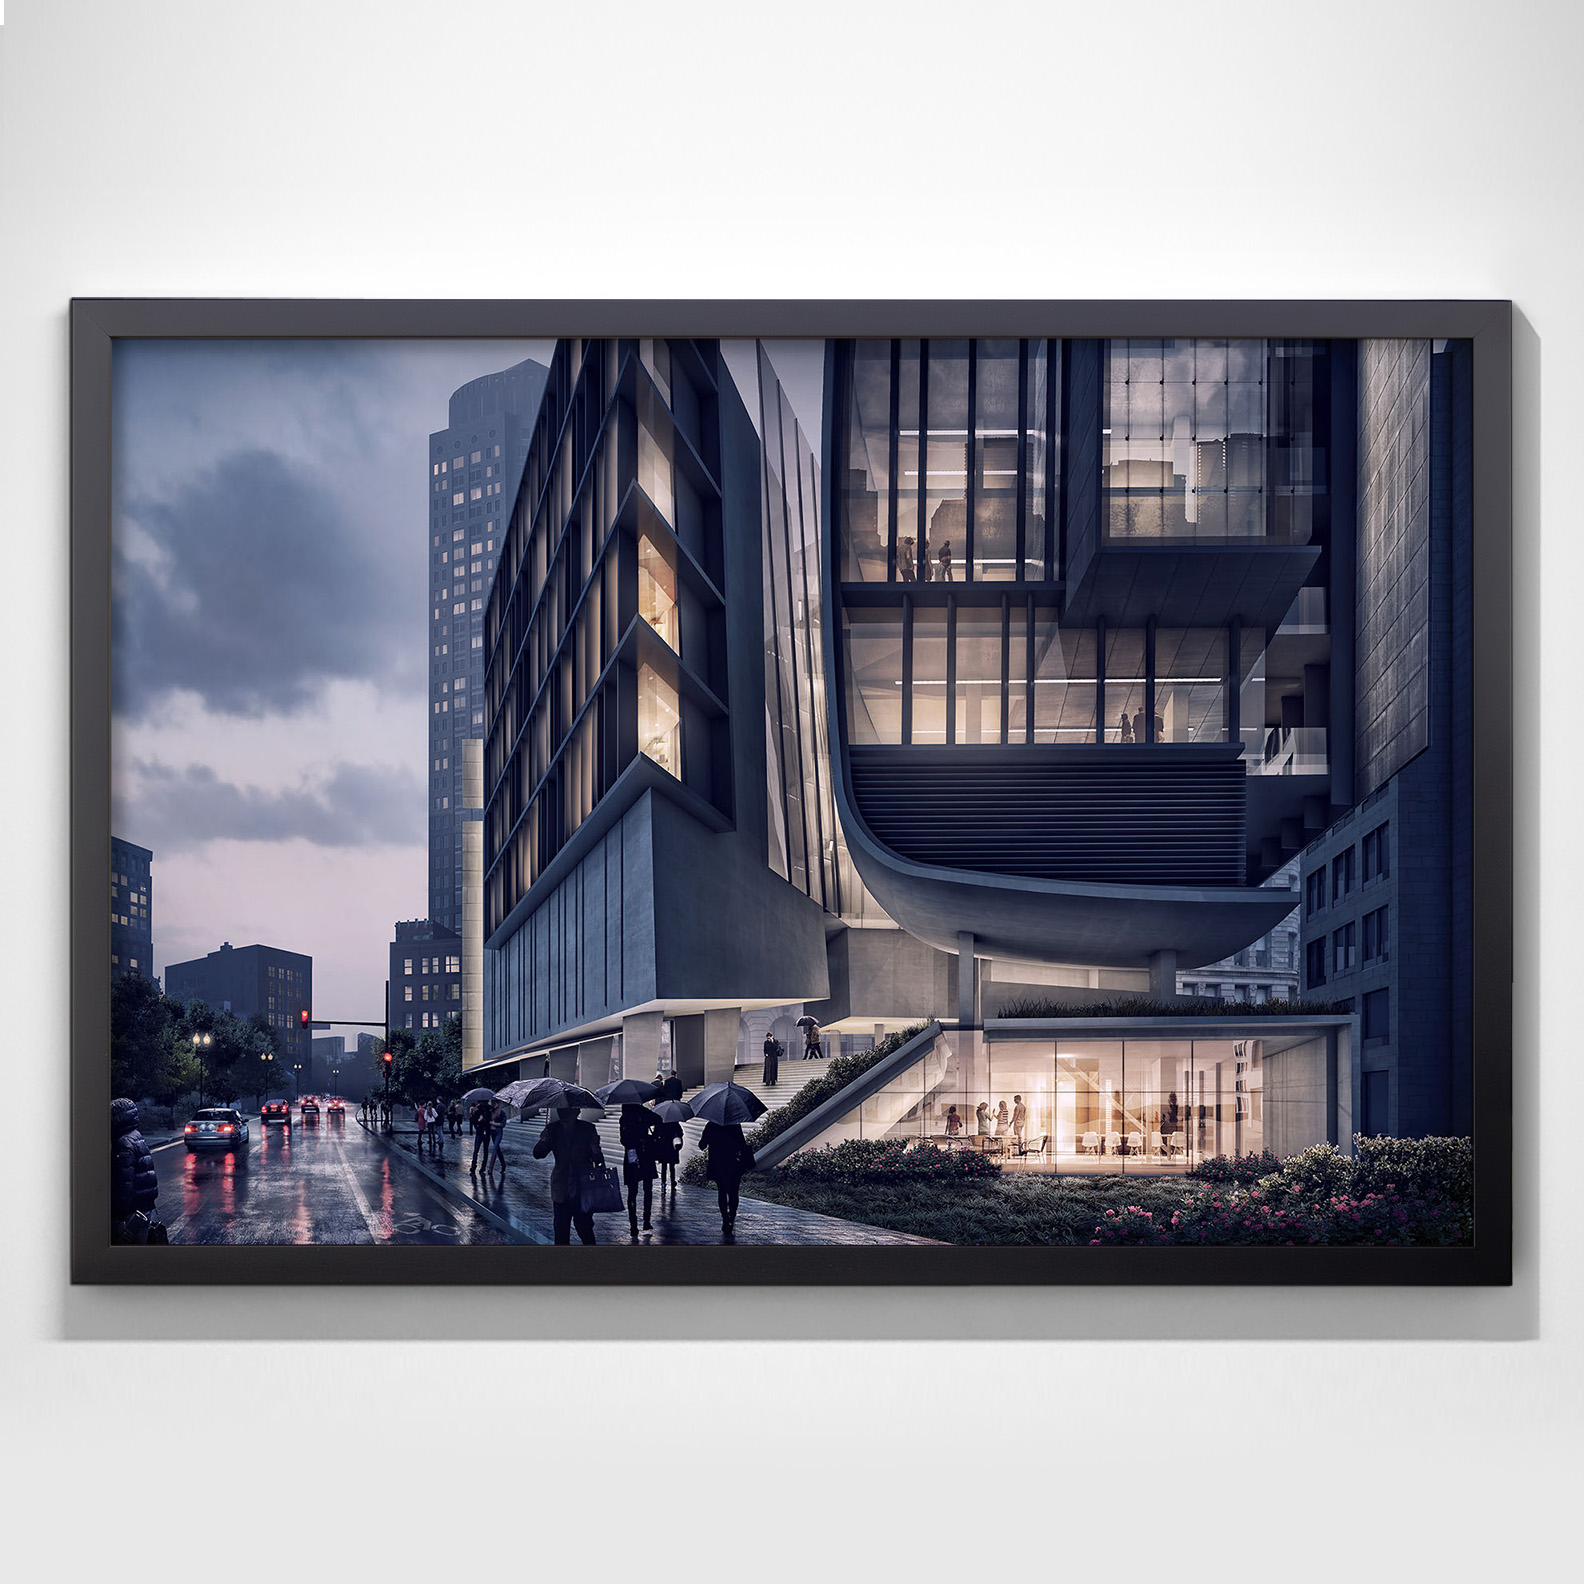 urban night perspective framed poster visualizing architecture